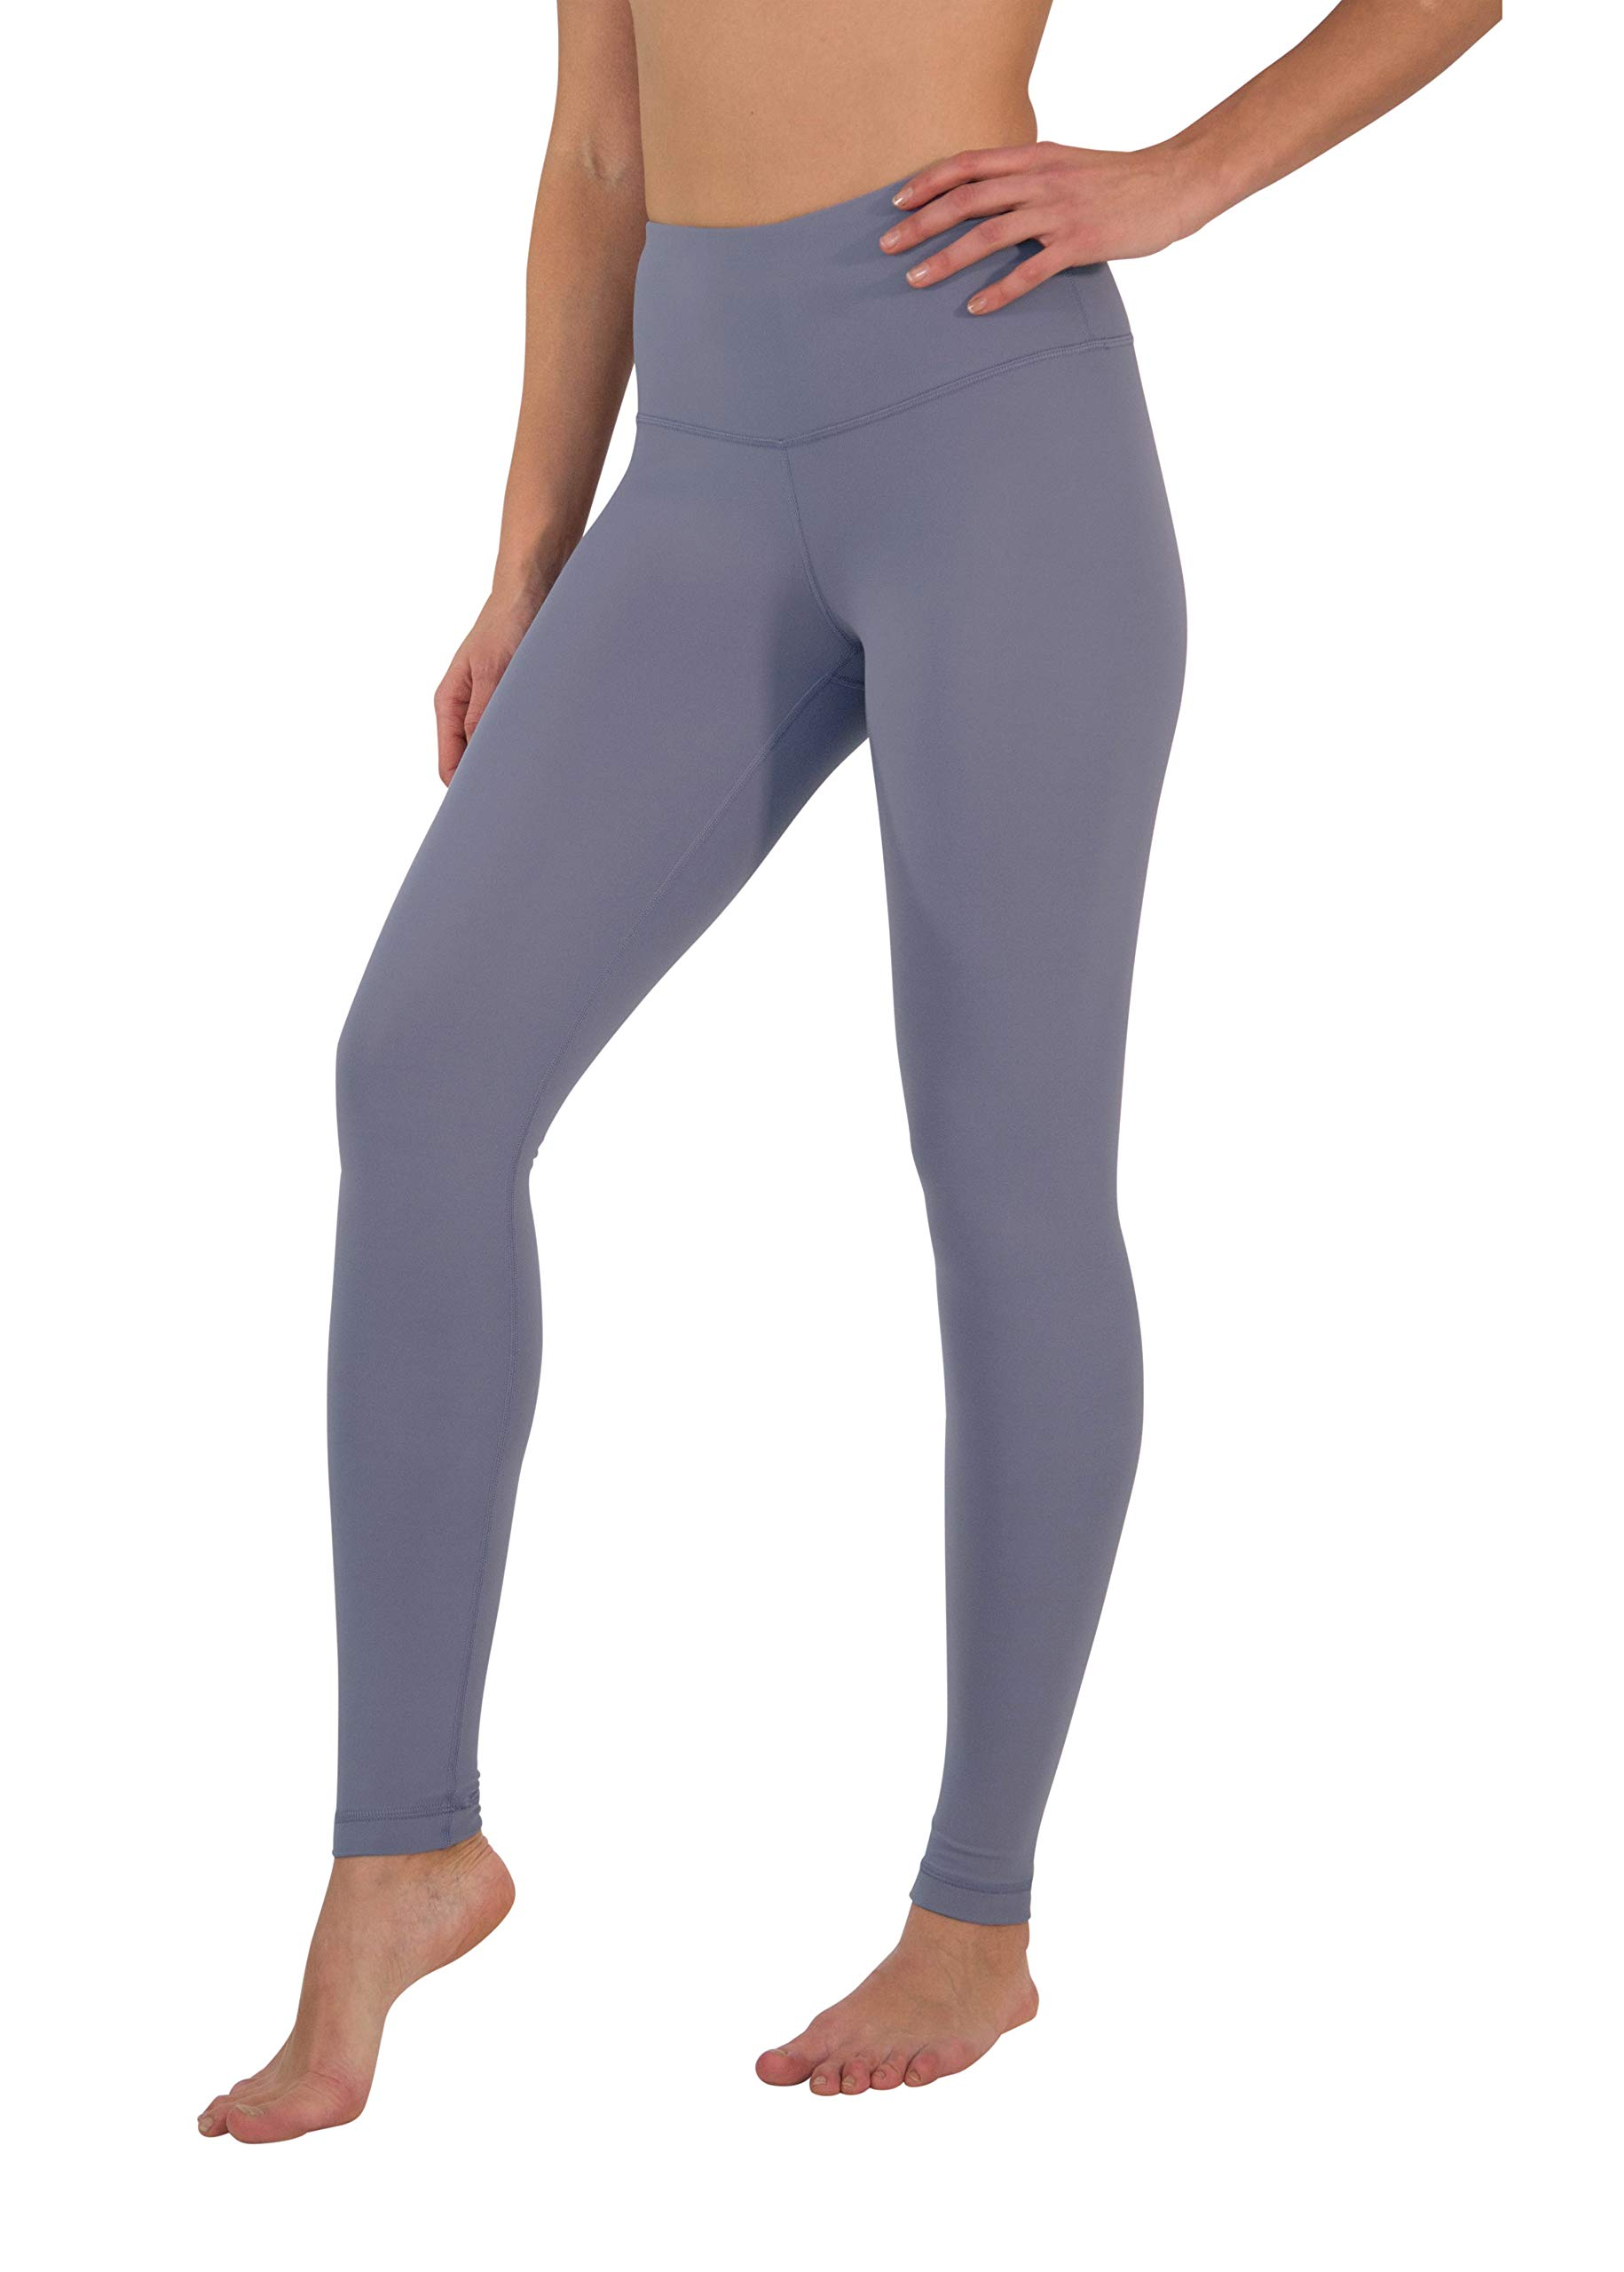 Yogalicious High Waist Ultra Soft Lightweight Leggings -  High Rise Yoga Pants - Grey Mauve - XS by Yogalicious